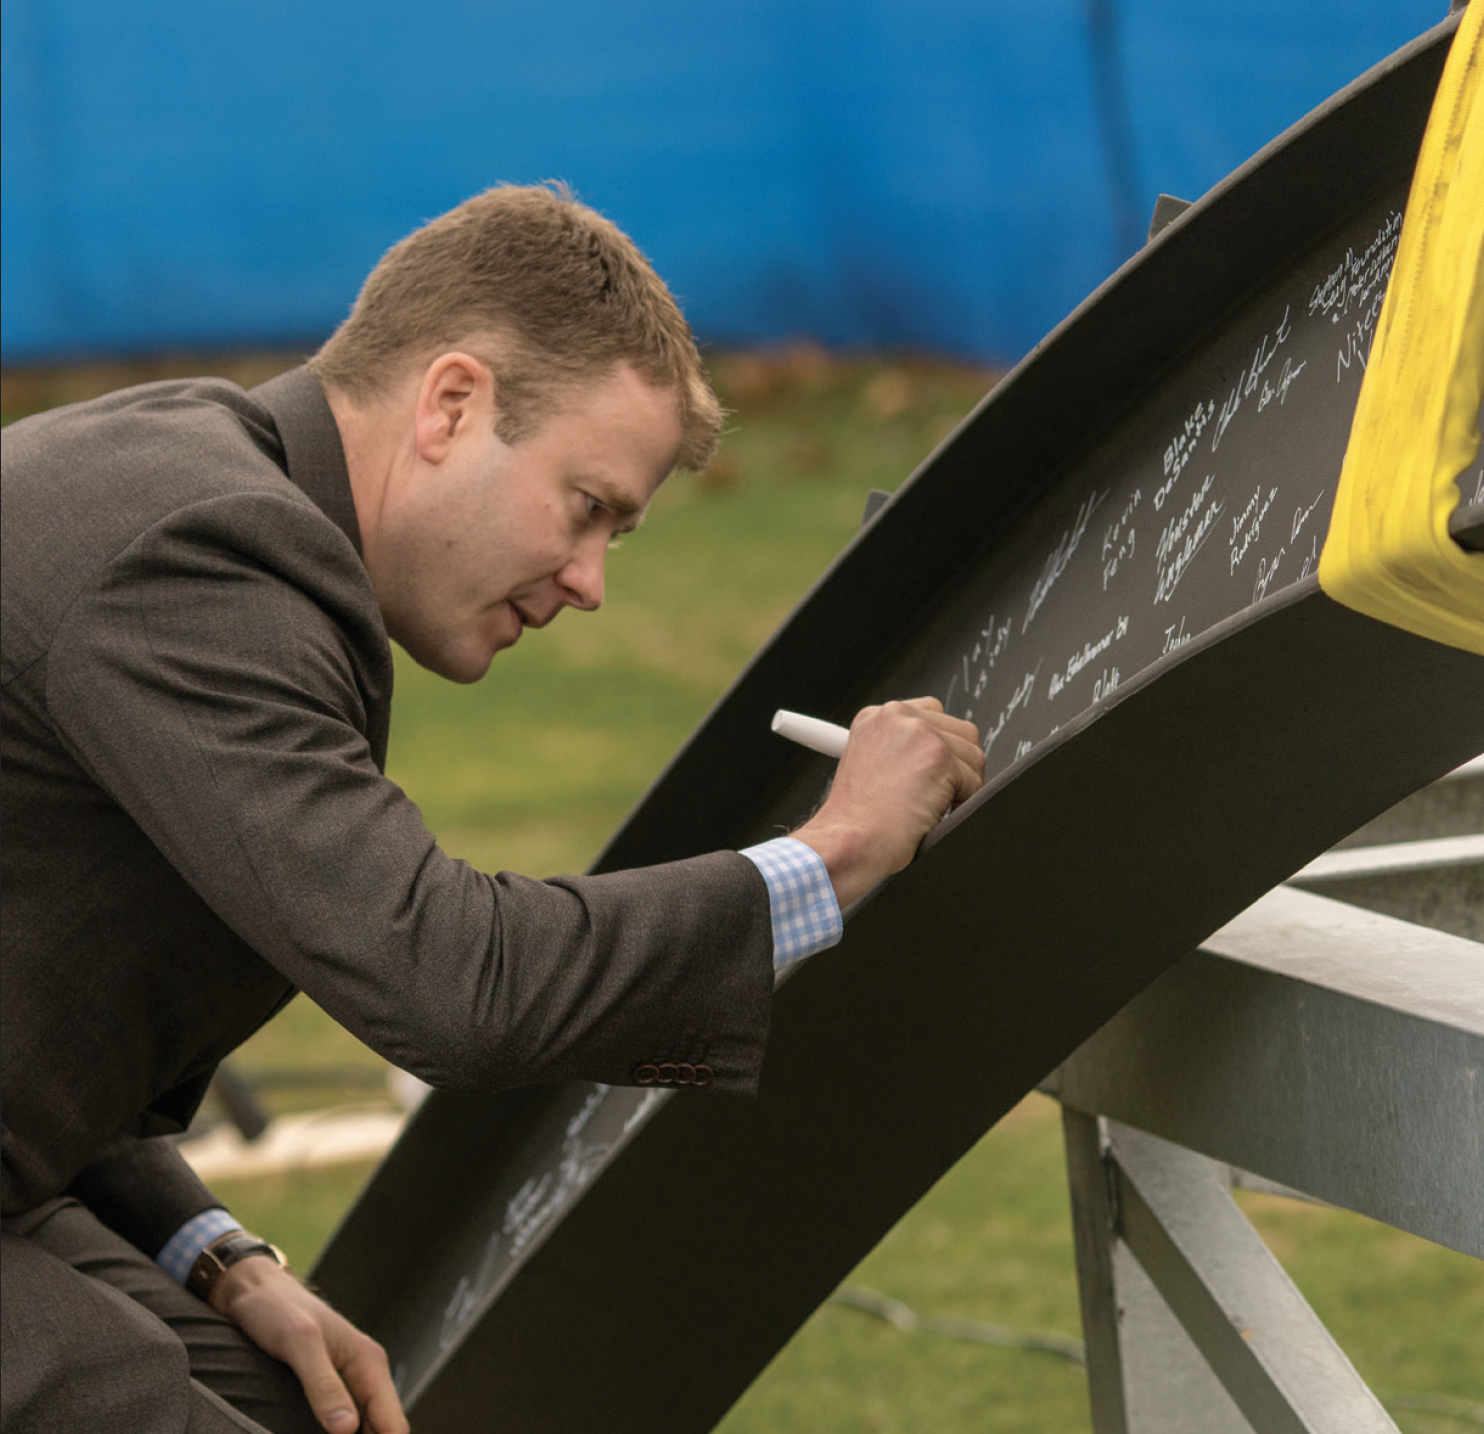 Joining the 90 members of the Class of 2018, Chris Winn '99 affixes the final signature to the last steel beam to be added to the Winn Science Center during the topping off ceremony in January 2018.